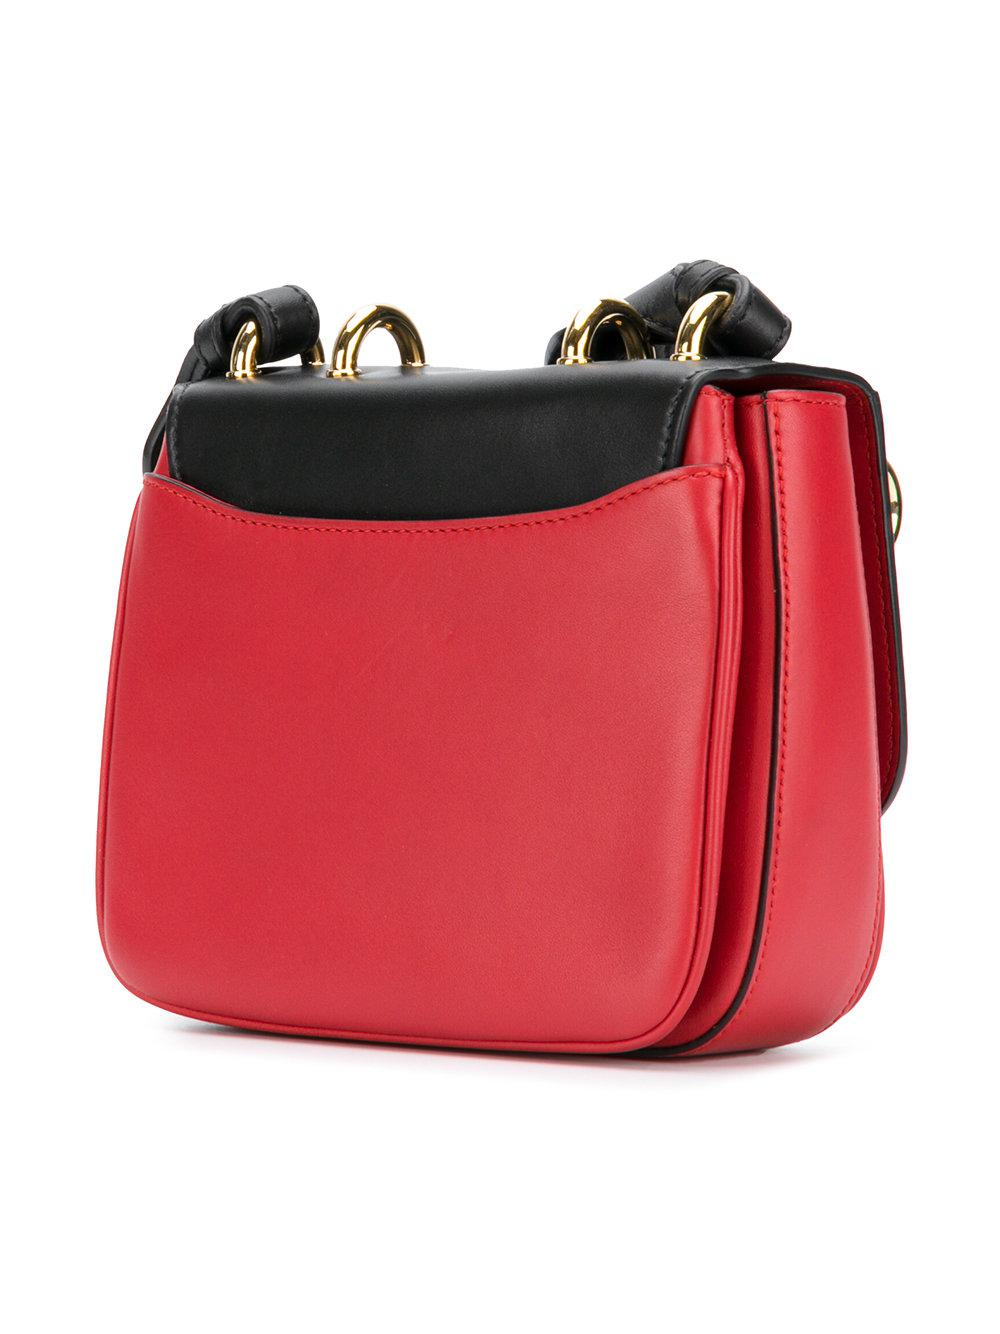 Balmain Leather Contrast Strap Cross Body Bag in Red